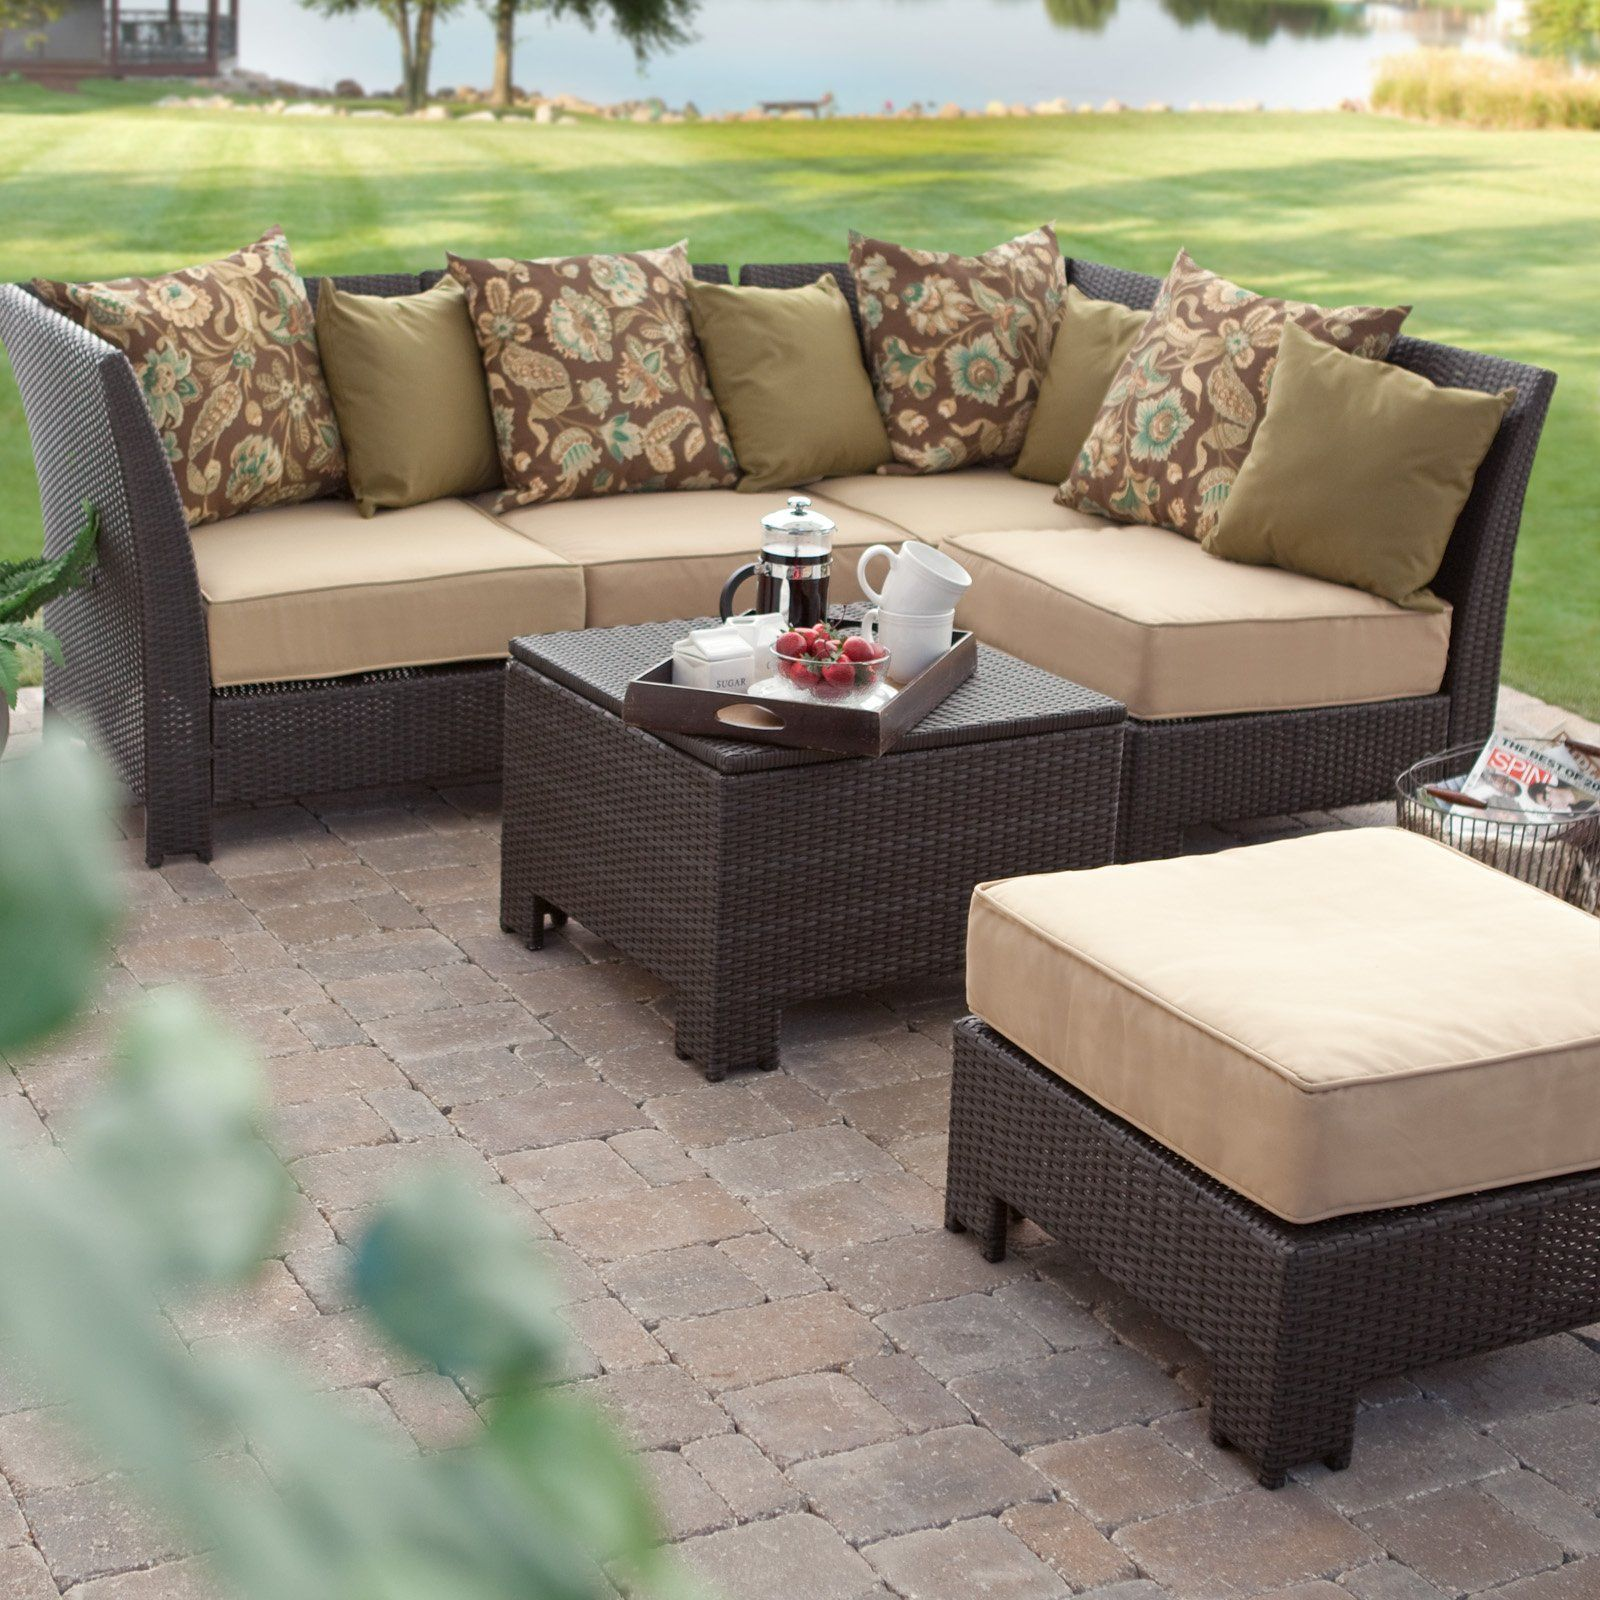 Outdoor Patio Furniture Omaha Ne: Time To Get Ready For Spring. Love These Resin Wicker Sets